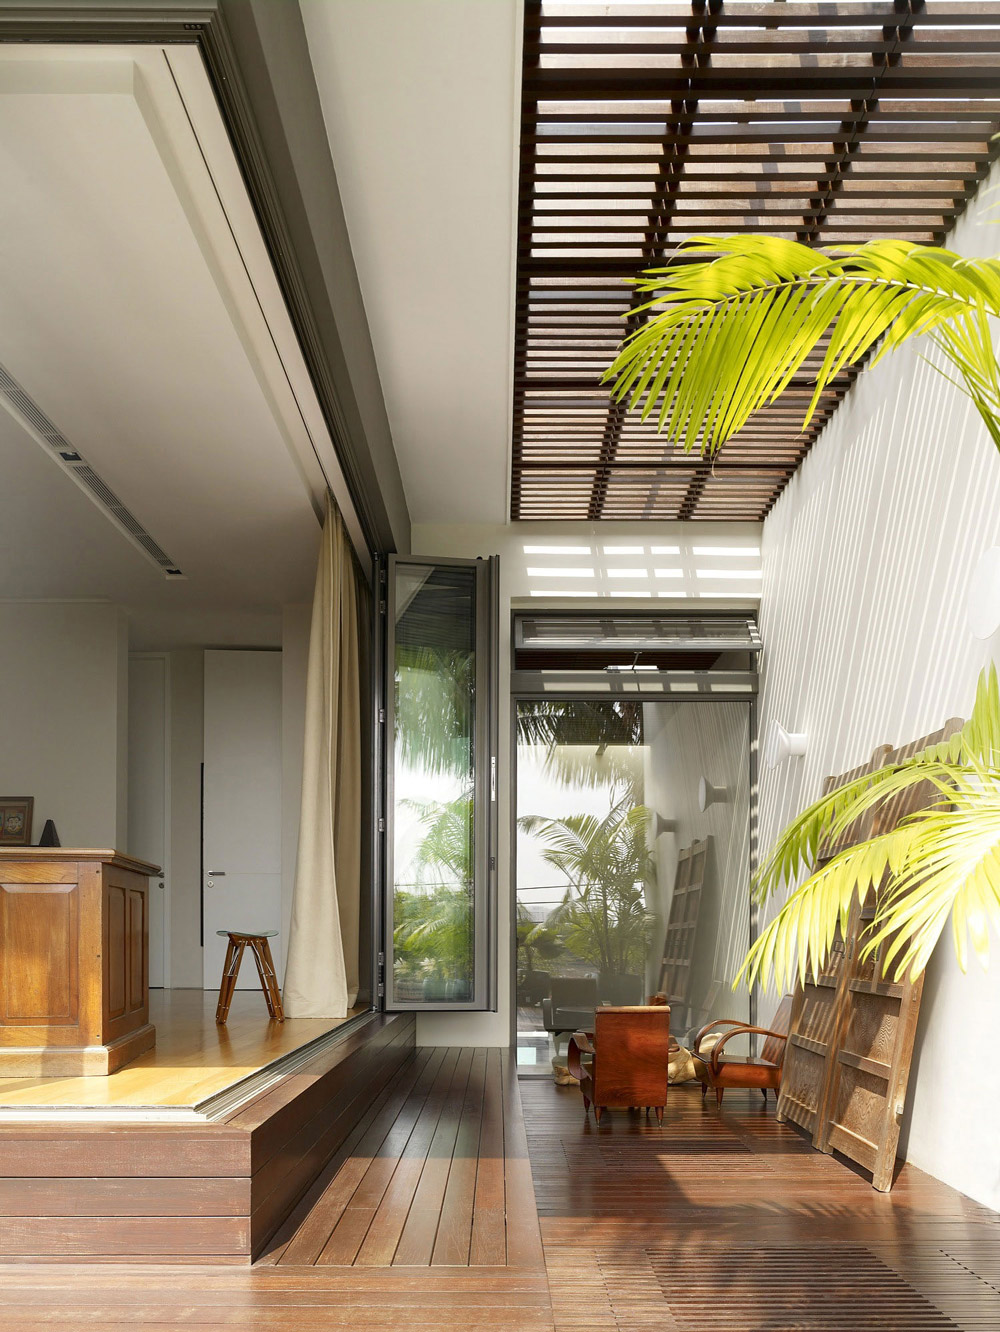 Terrace, Veranda, Modern Home, Singapore